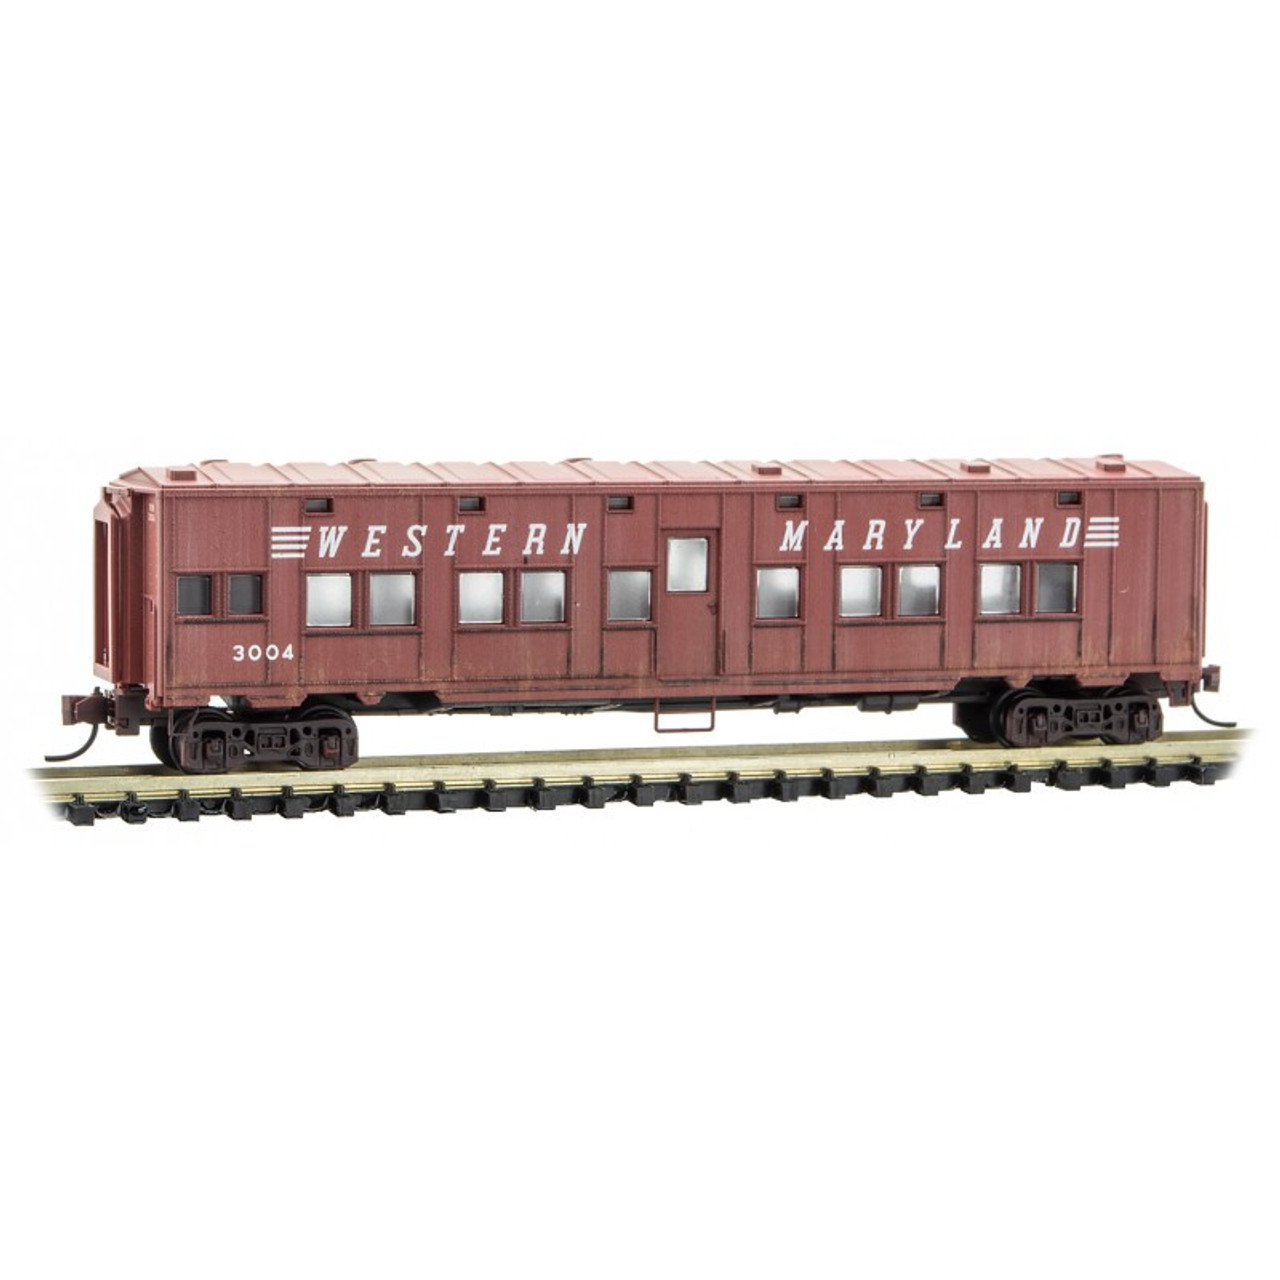 MICRO TRAINS 993 05 570 WM - Western Maryland Weathered 2-Pack  (SCALE=N)  PART # 489-99305570